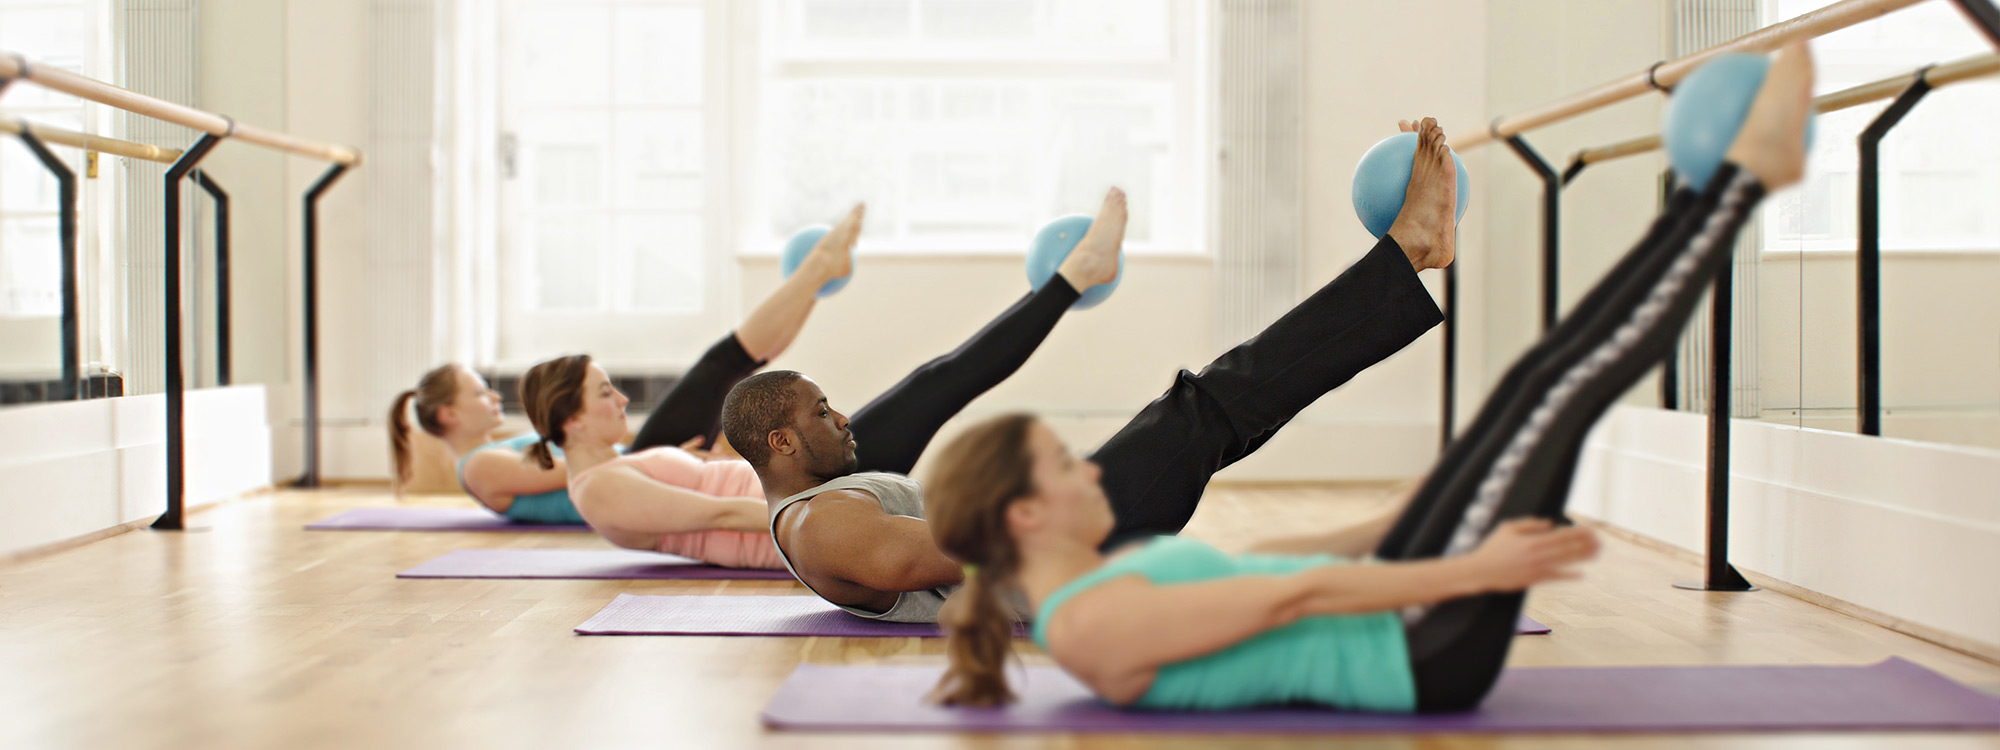 Cours de Pilates « en direct »